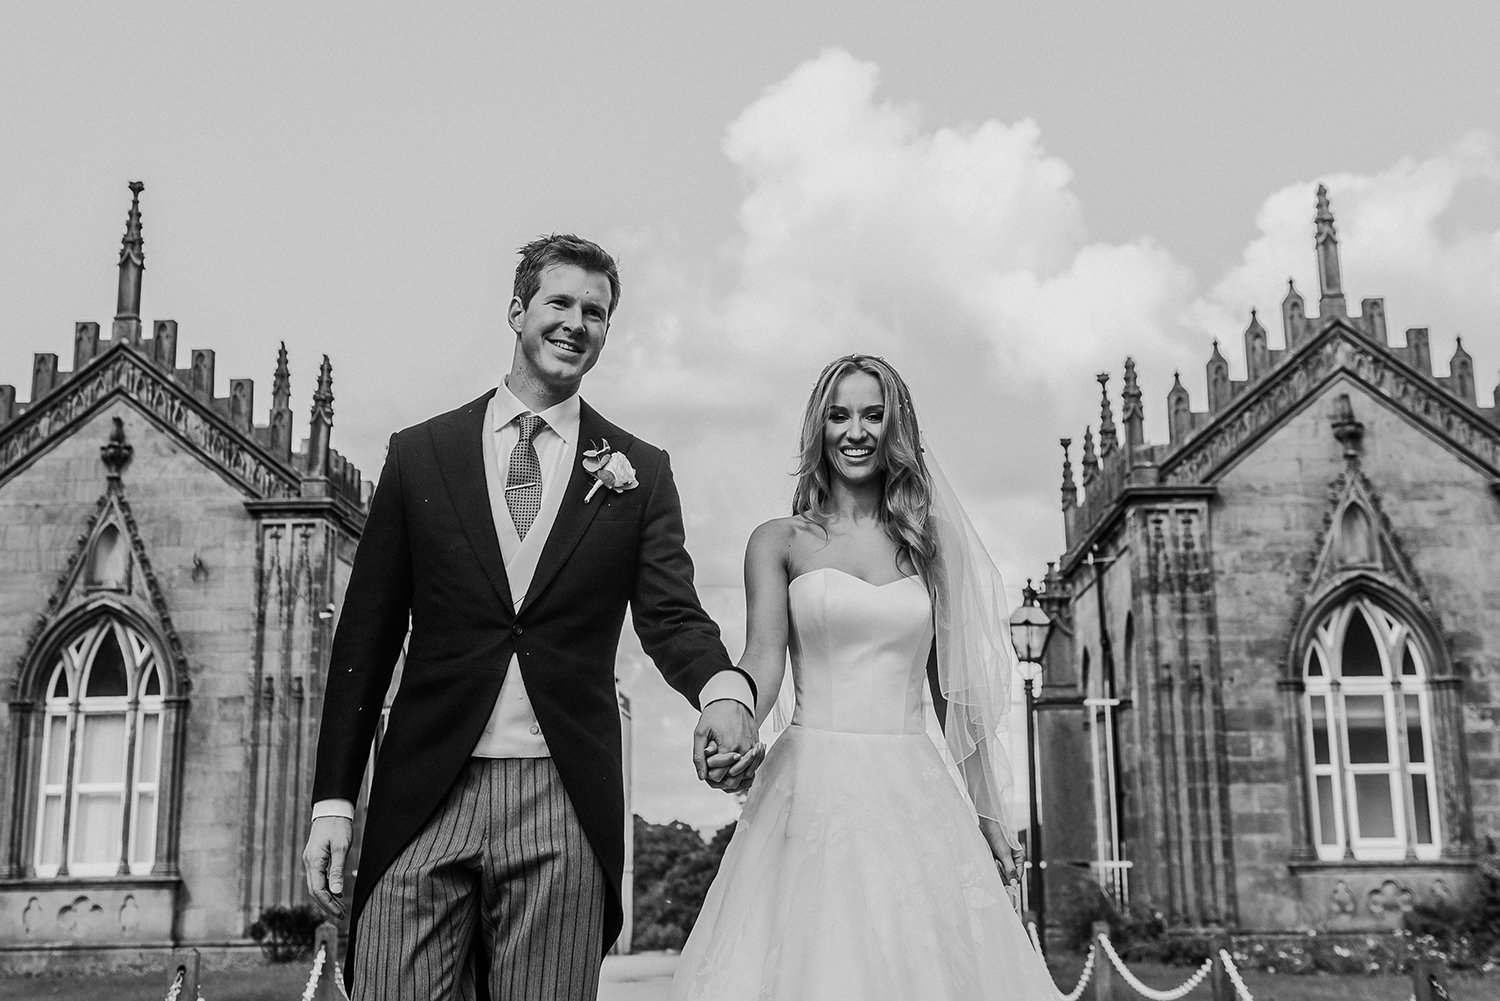 BW photo of bride and groom at the venue gates